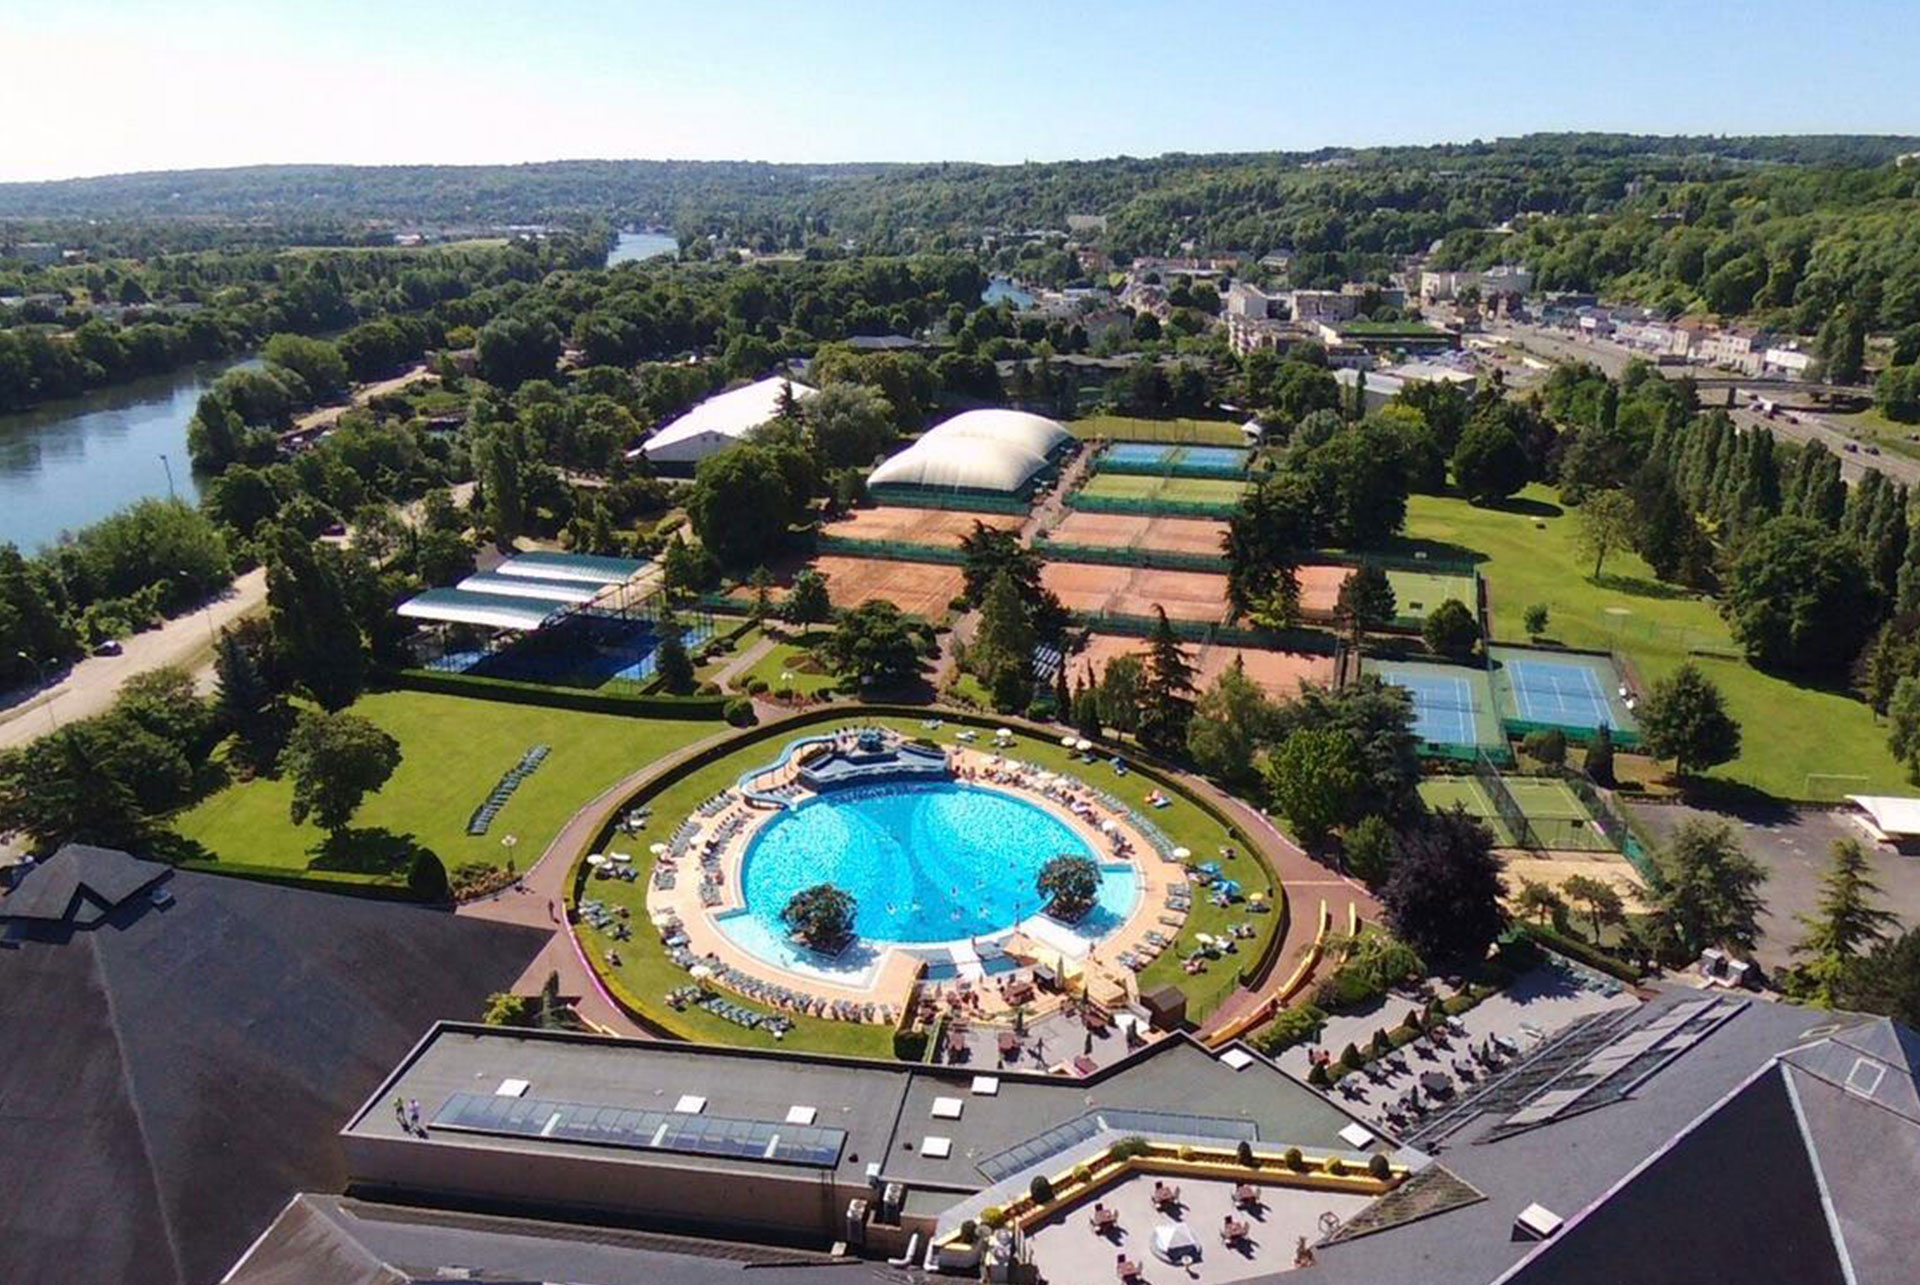 Have-a-nice-day-coaching-prive-rueil-malmaison-club-pyramides-port-marly